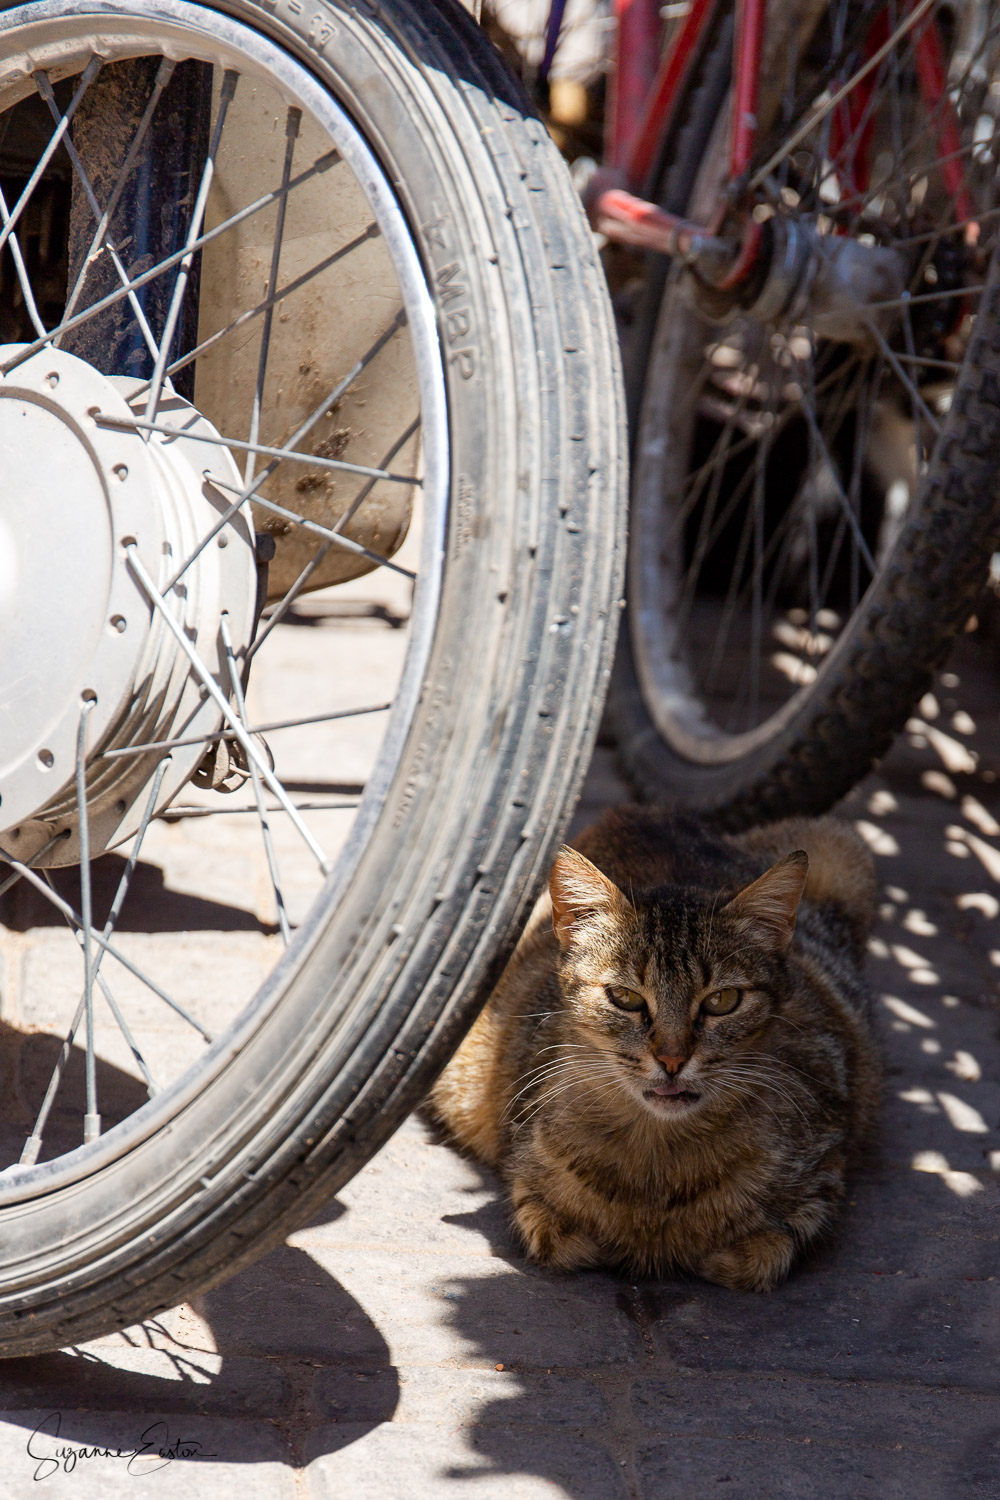 Hiding from the midday sun this tabby cat has found her spot in the motorbike repair shop.